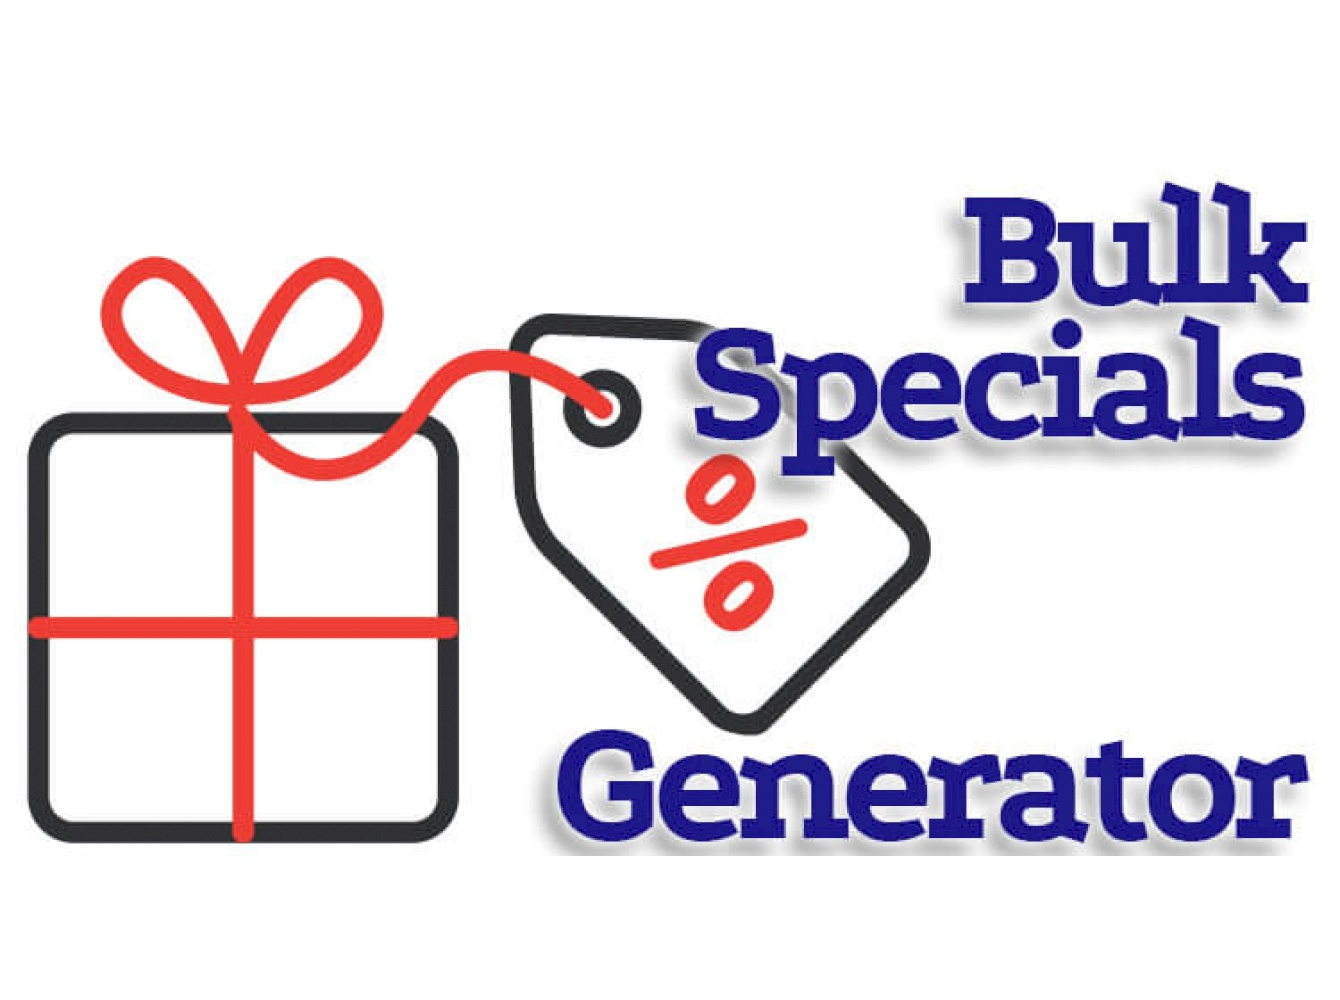 One-Click Specials Generator: by Categories, by Brands and more